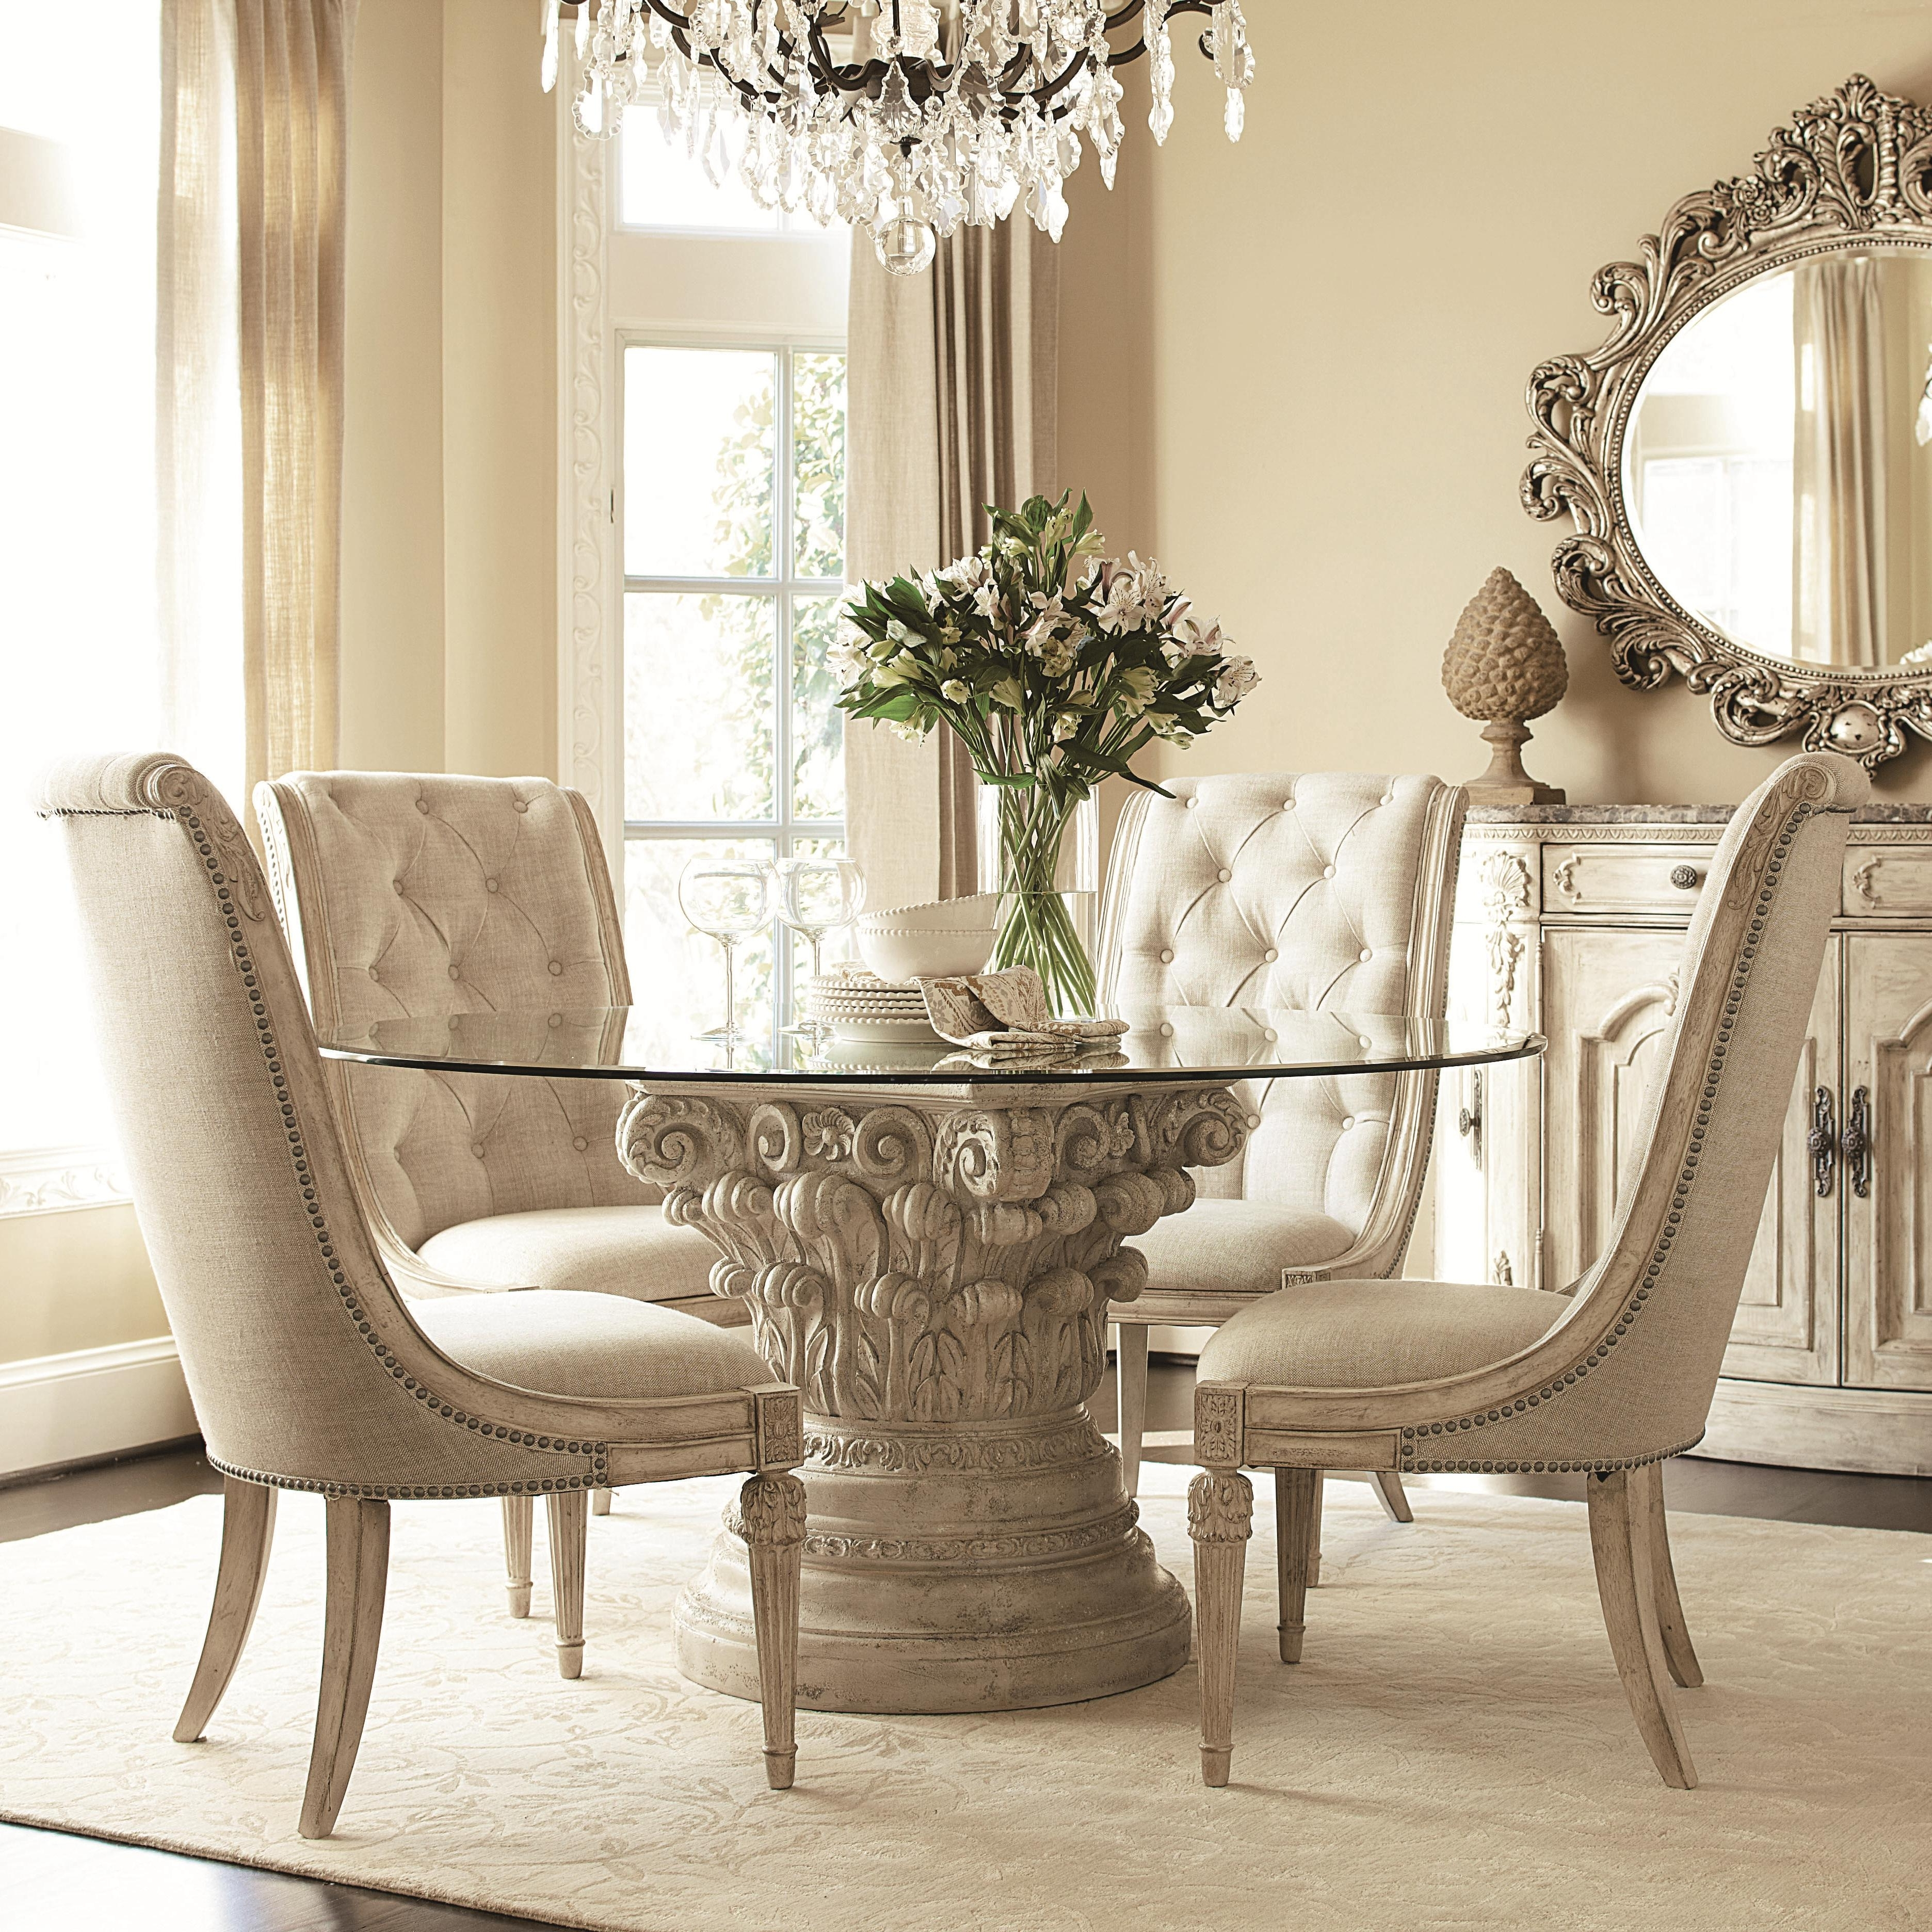 Preferred Caira 7 Piece Rectangular Dining Sets With Upholstered Side Chairs Inside American Drew Jessica Mcclintock Home – The Boutique Collection (View 20 of 25)